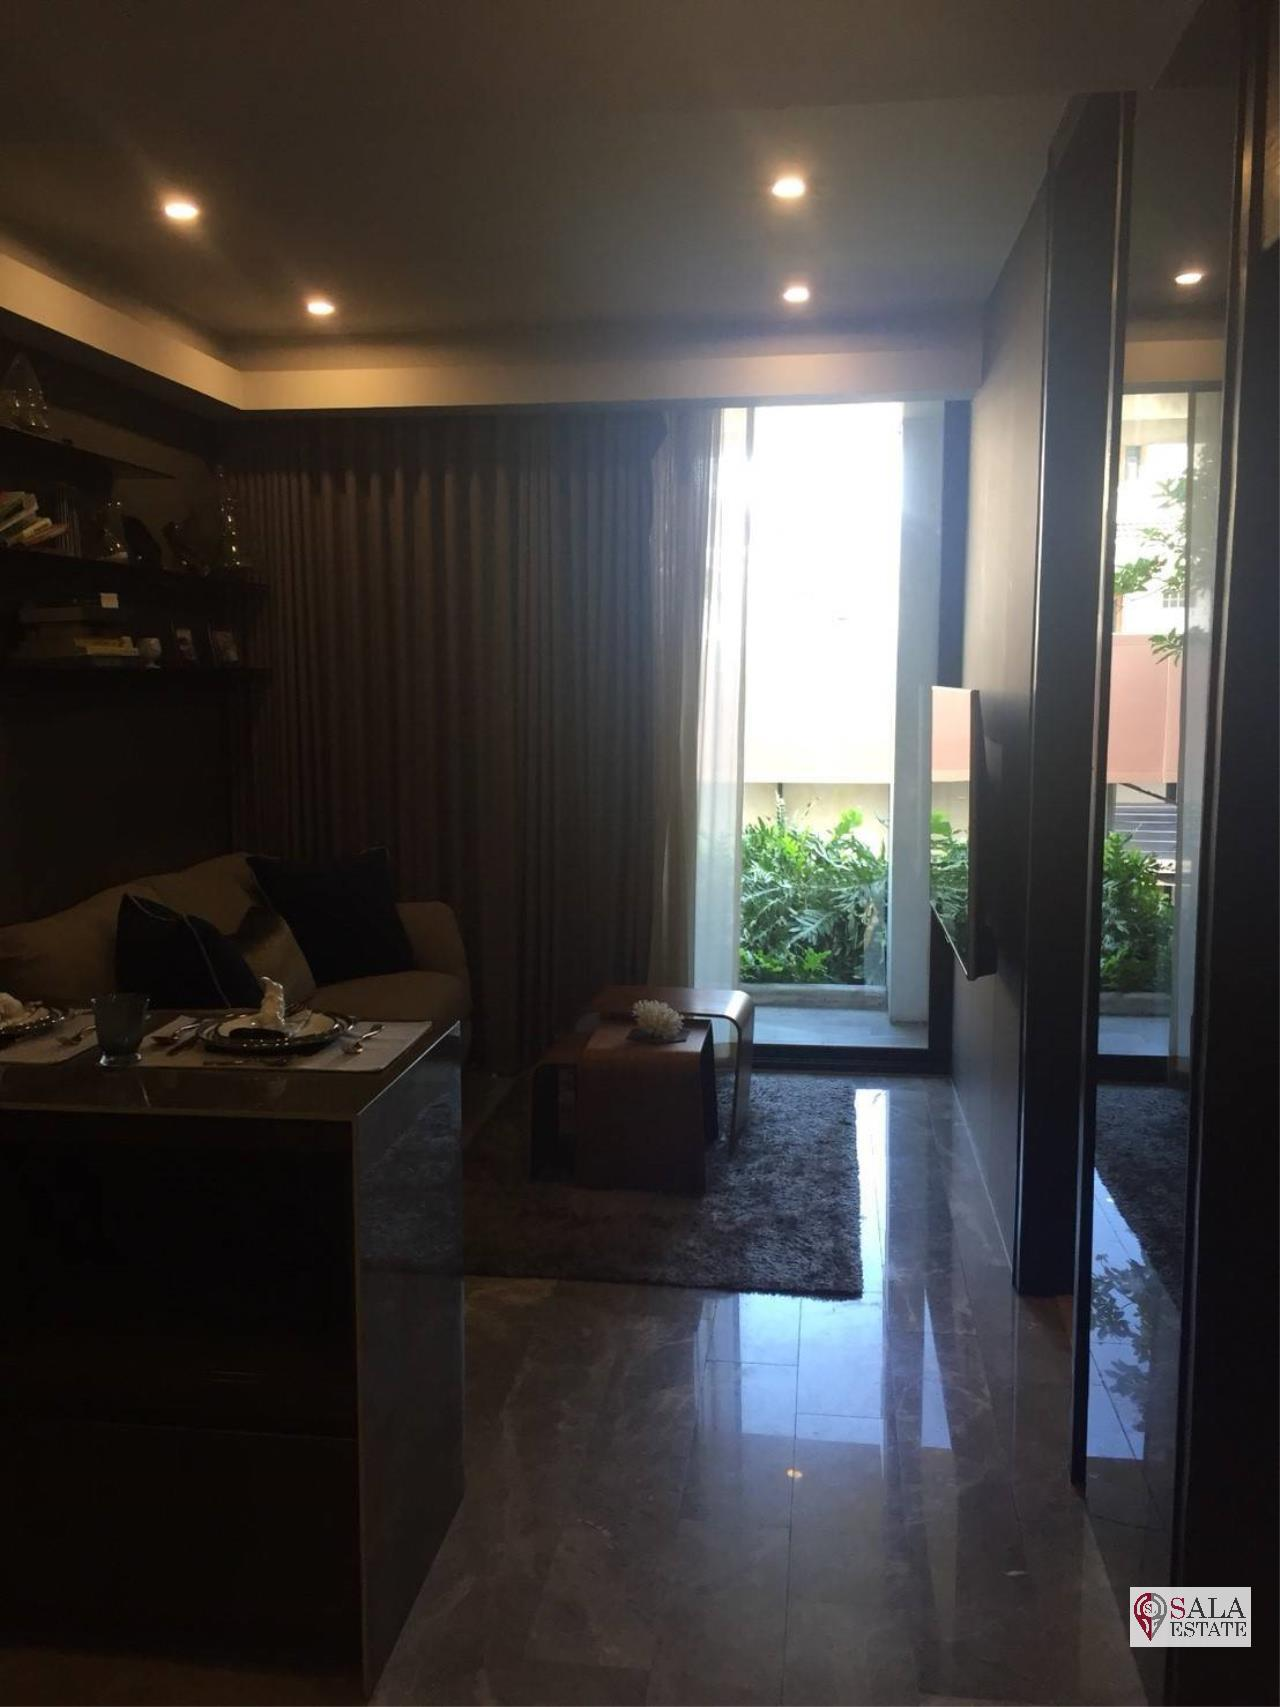 SALA ESTATE Agency's ( FOR SALE ) CONDO 168 SUKHUMVIT 36 - LOW RISE, 1 BEDROOM 1 BATHROOM, FULLY FURNISHED 8